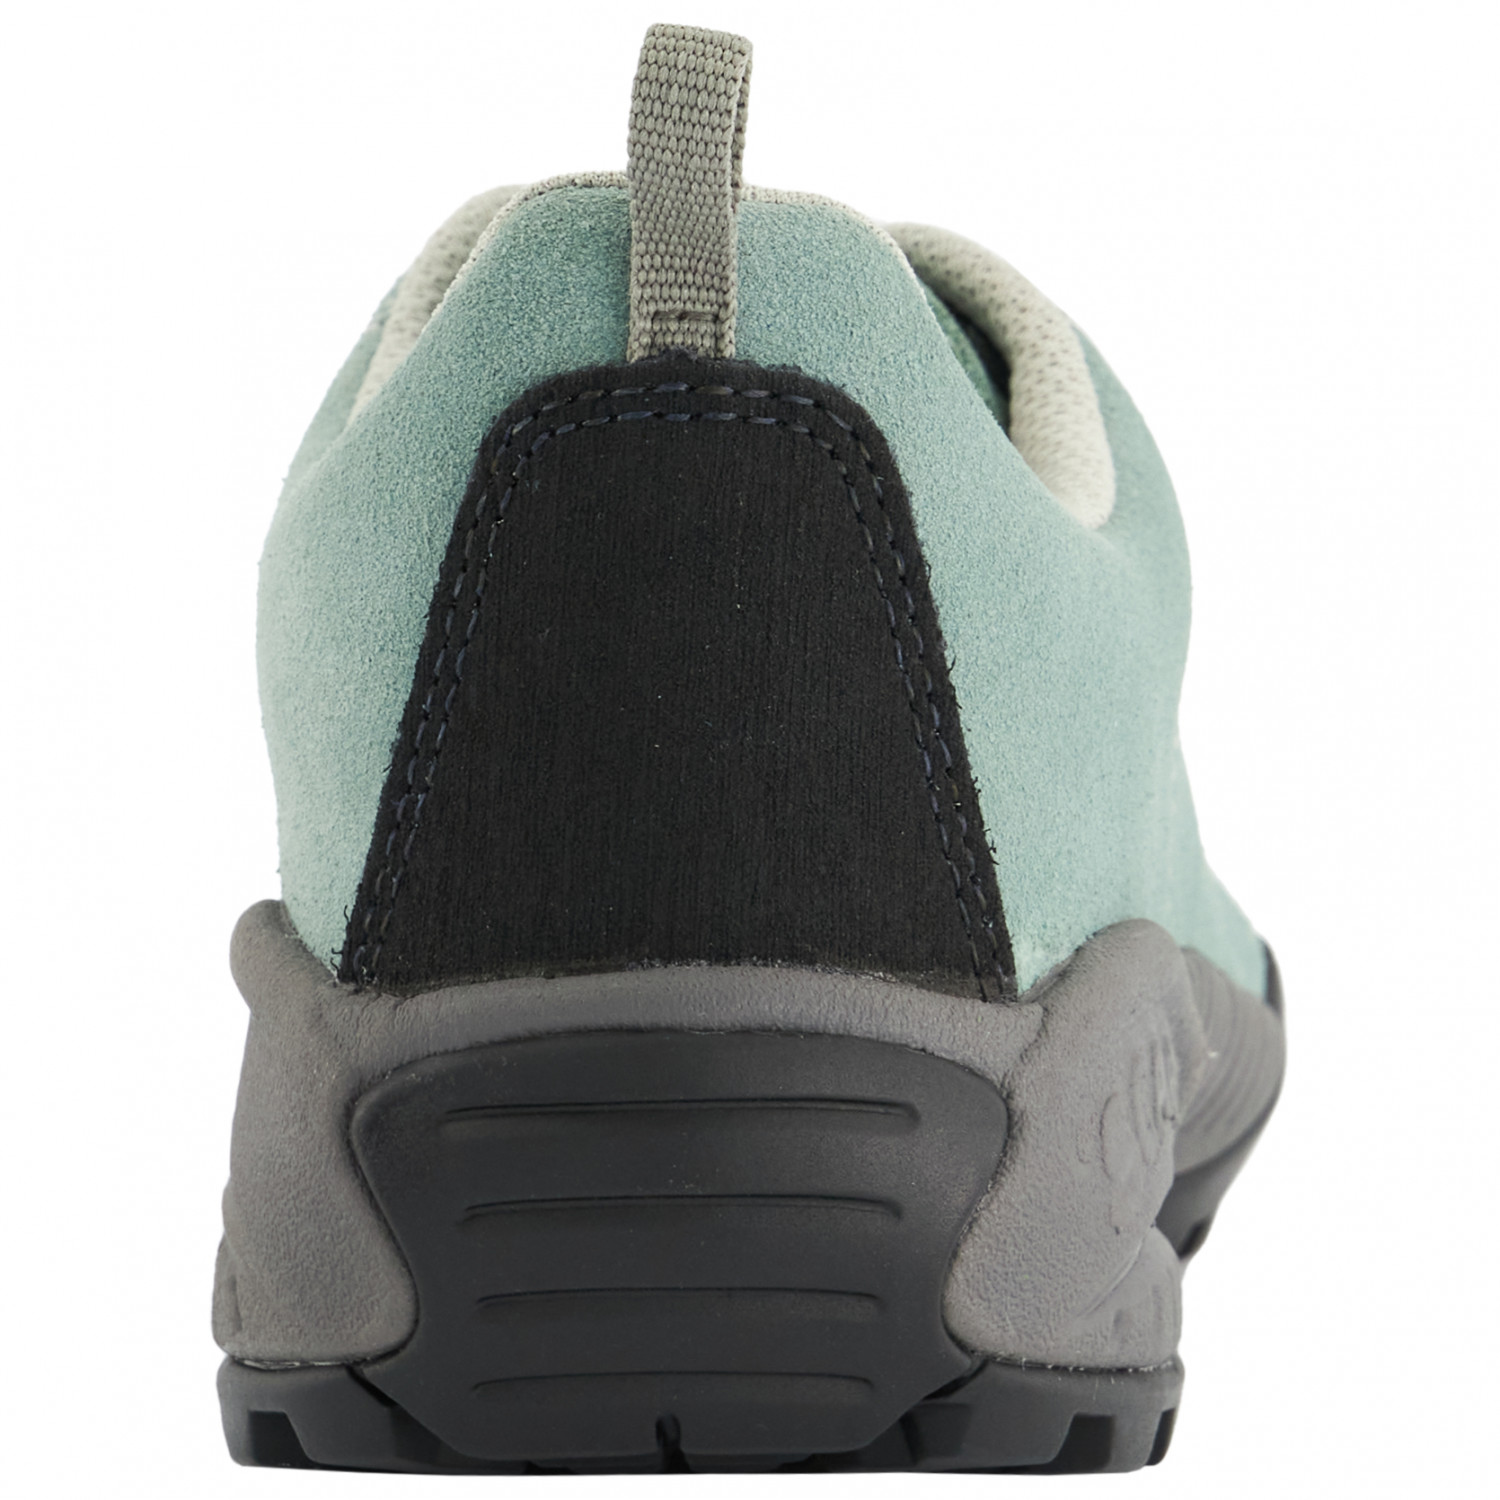 Scarpa Mojito Gtx Approach Shoes Free Uk Delivery